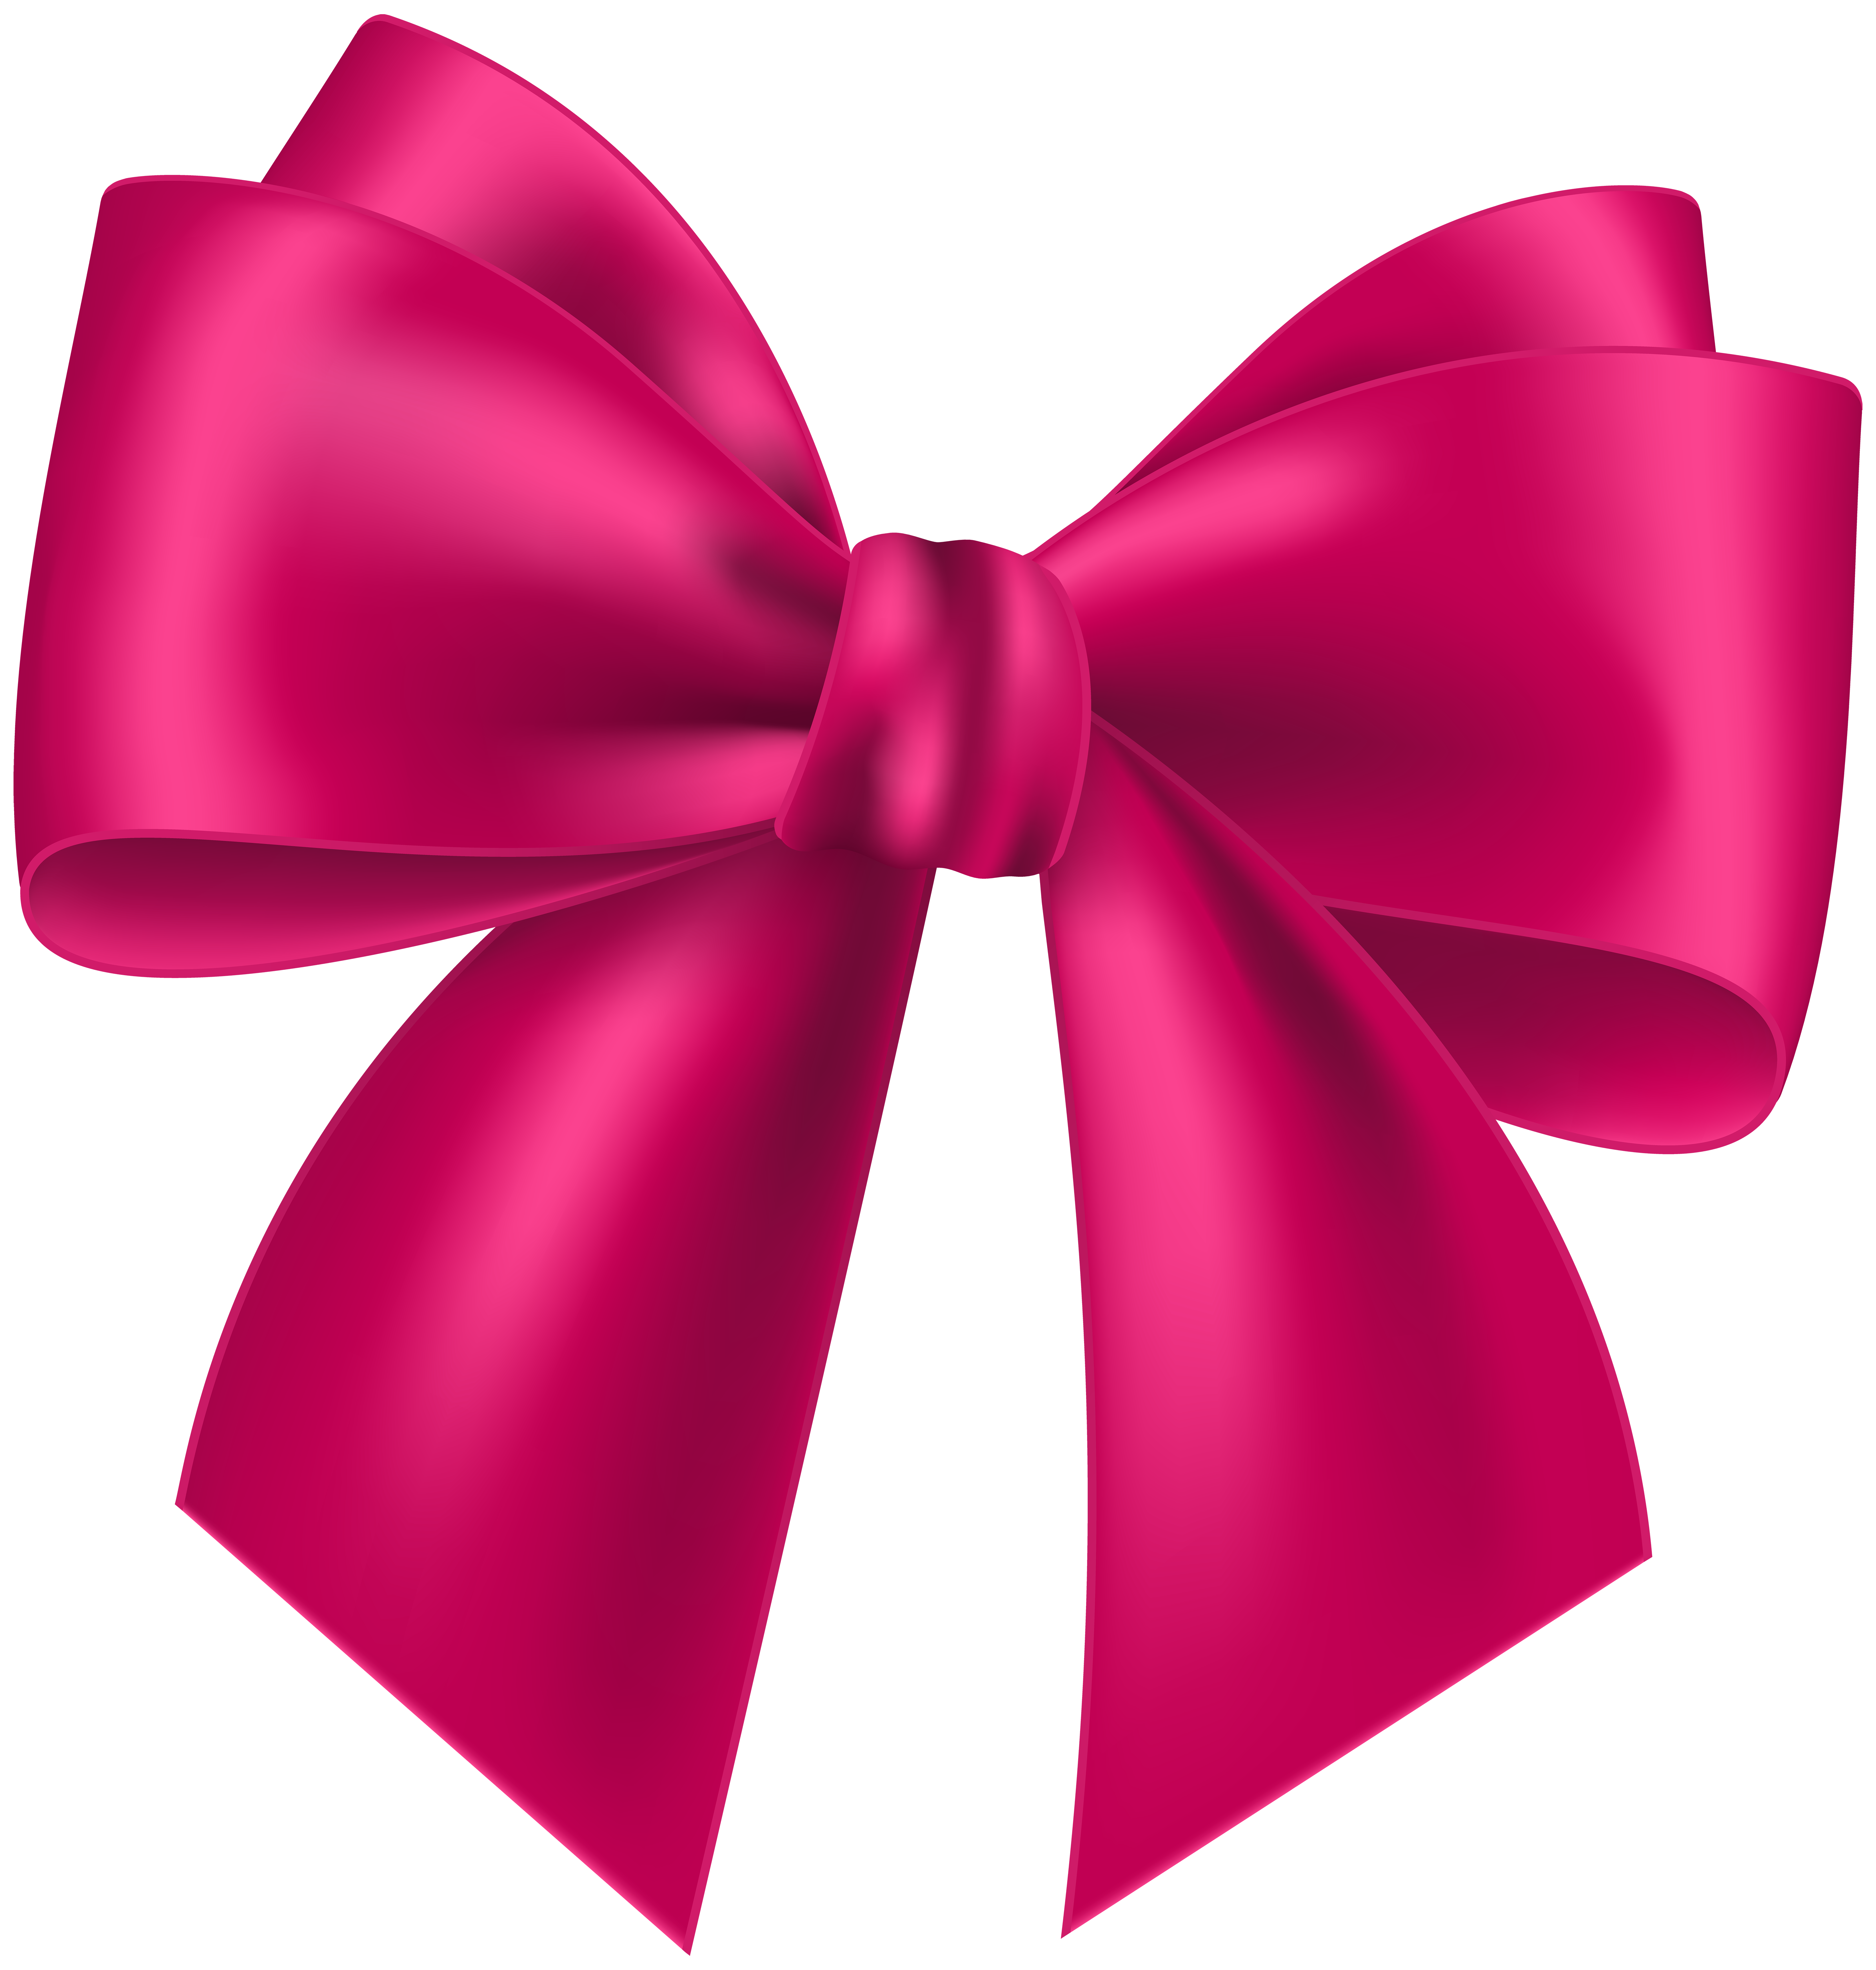 Pink Bow Transparent Clip Art Image Gallery Yopriceville High Quality Images And Transparent Png Free Clipart Bows Free Clip Art Bow Drawing